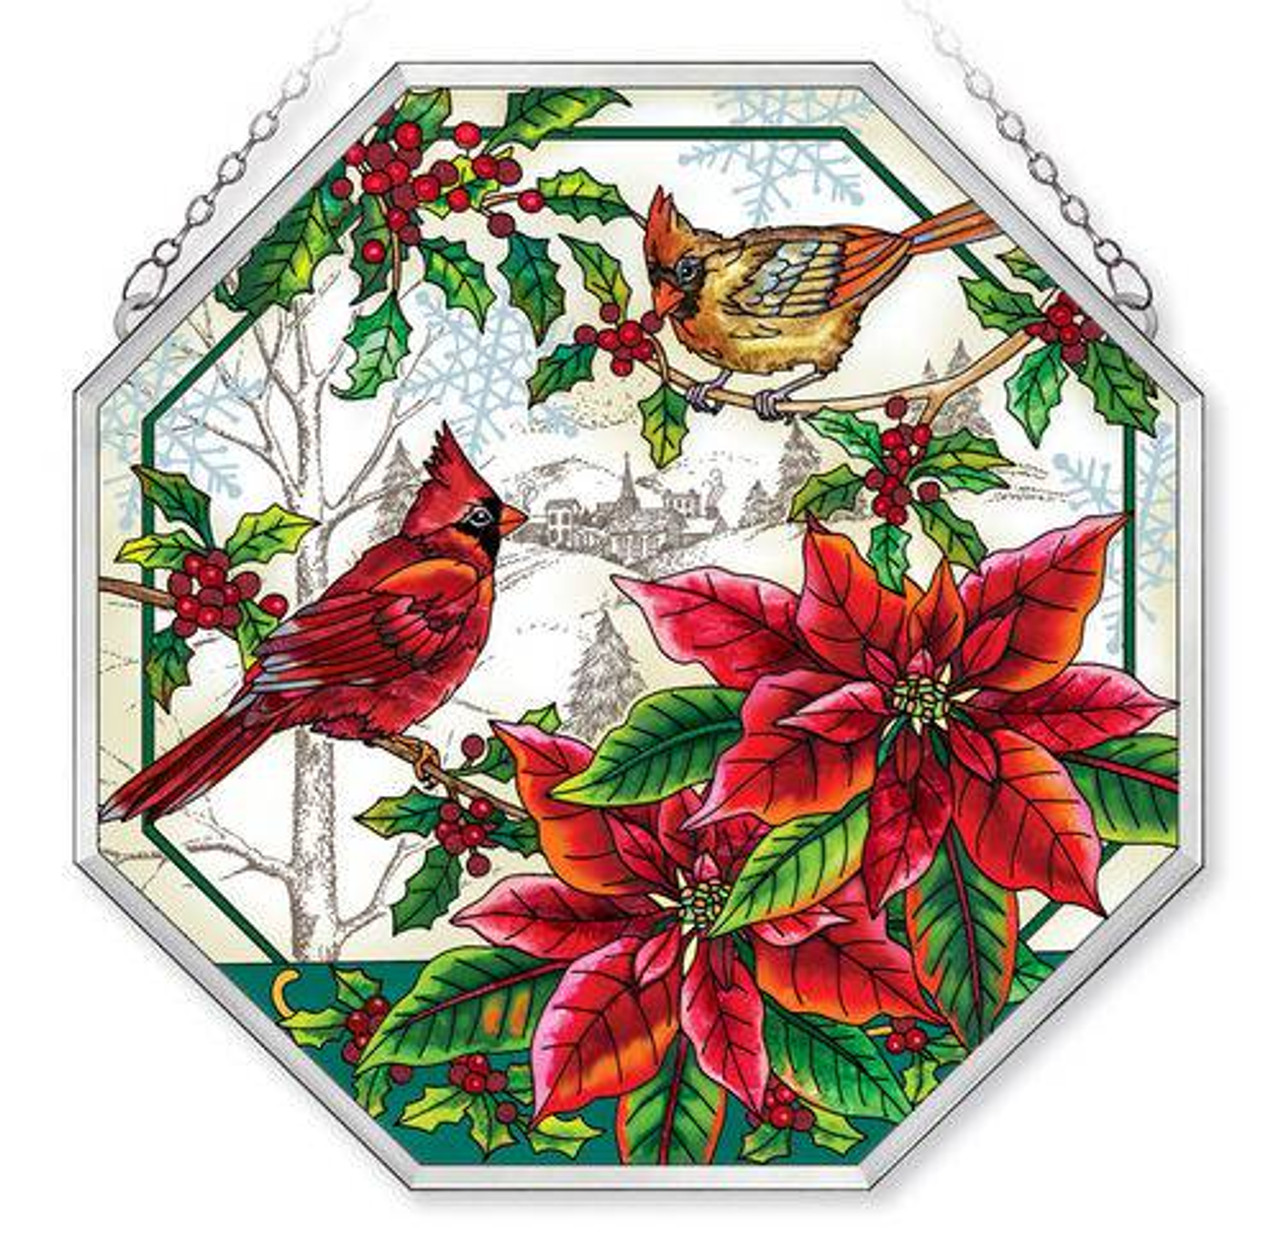 Christmas Cardinals Images.Holly Jolly Christmas Cardinals 15 Octagon Stained Glass Suncatcher